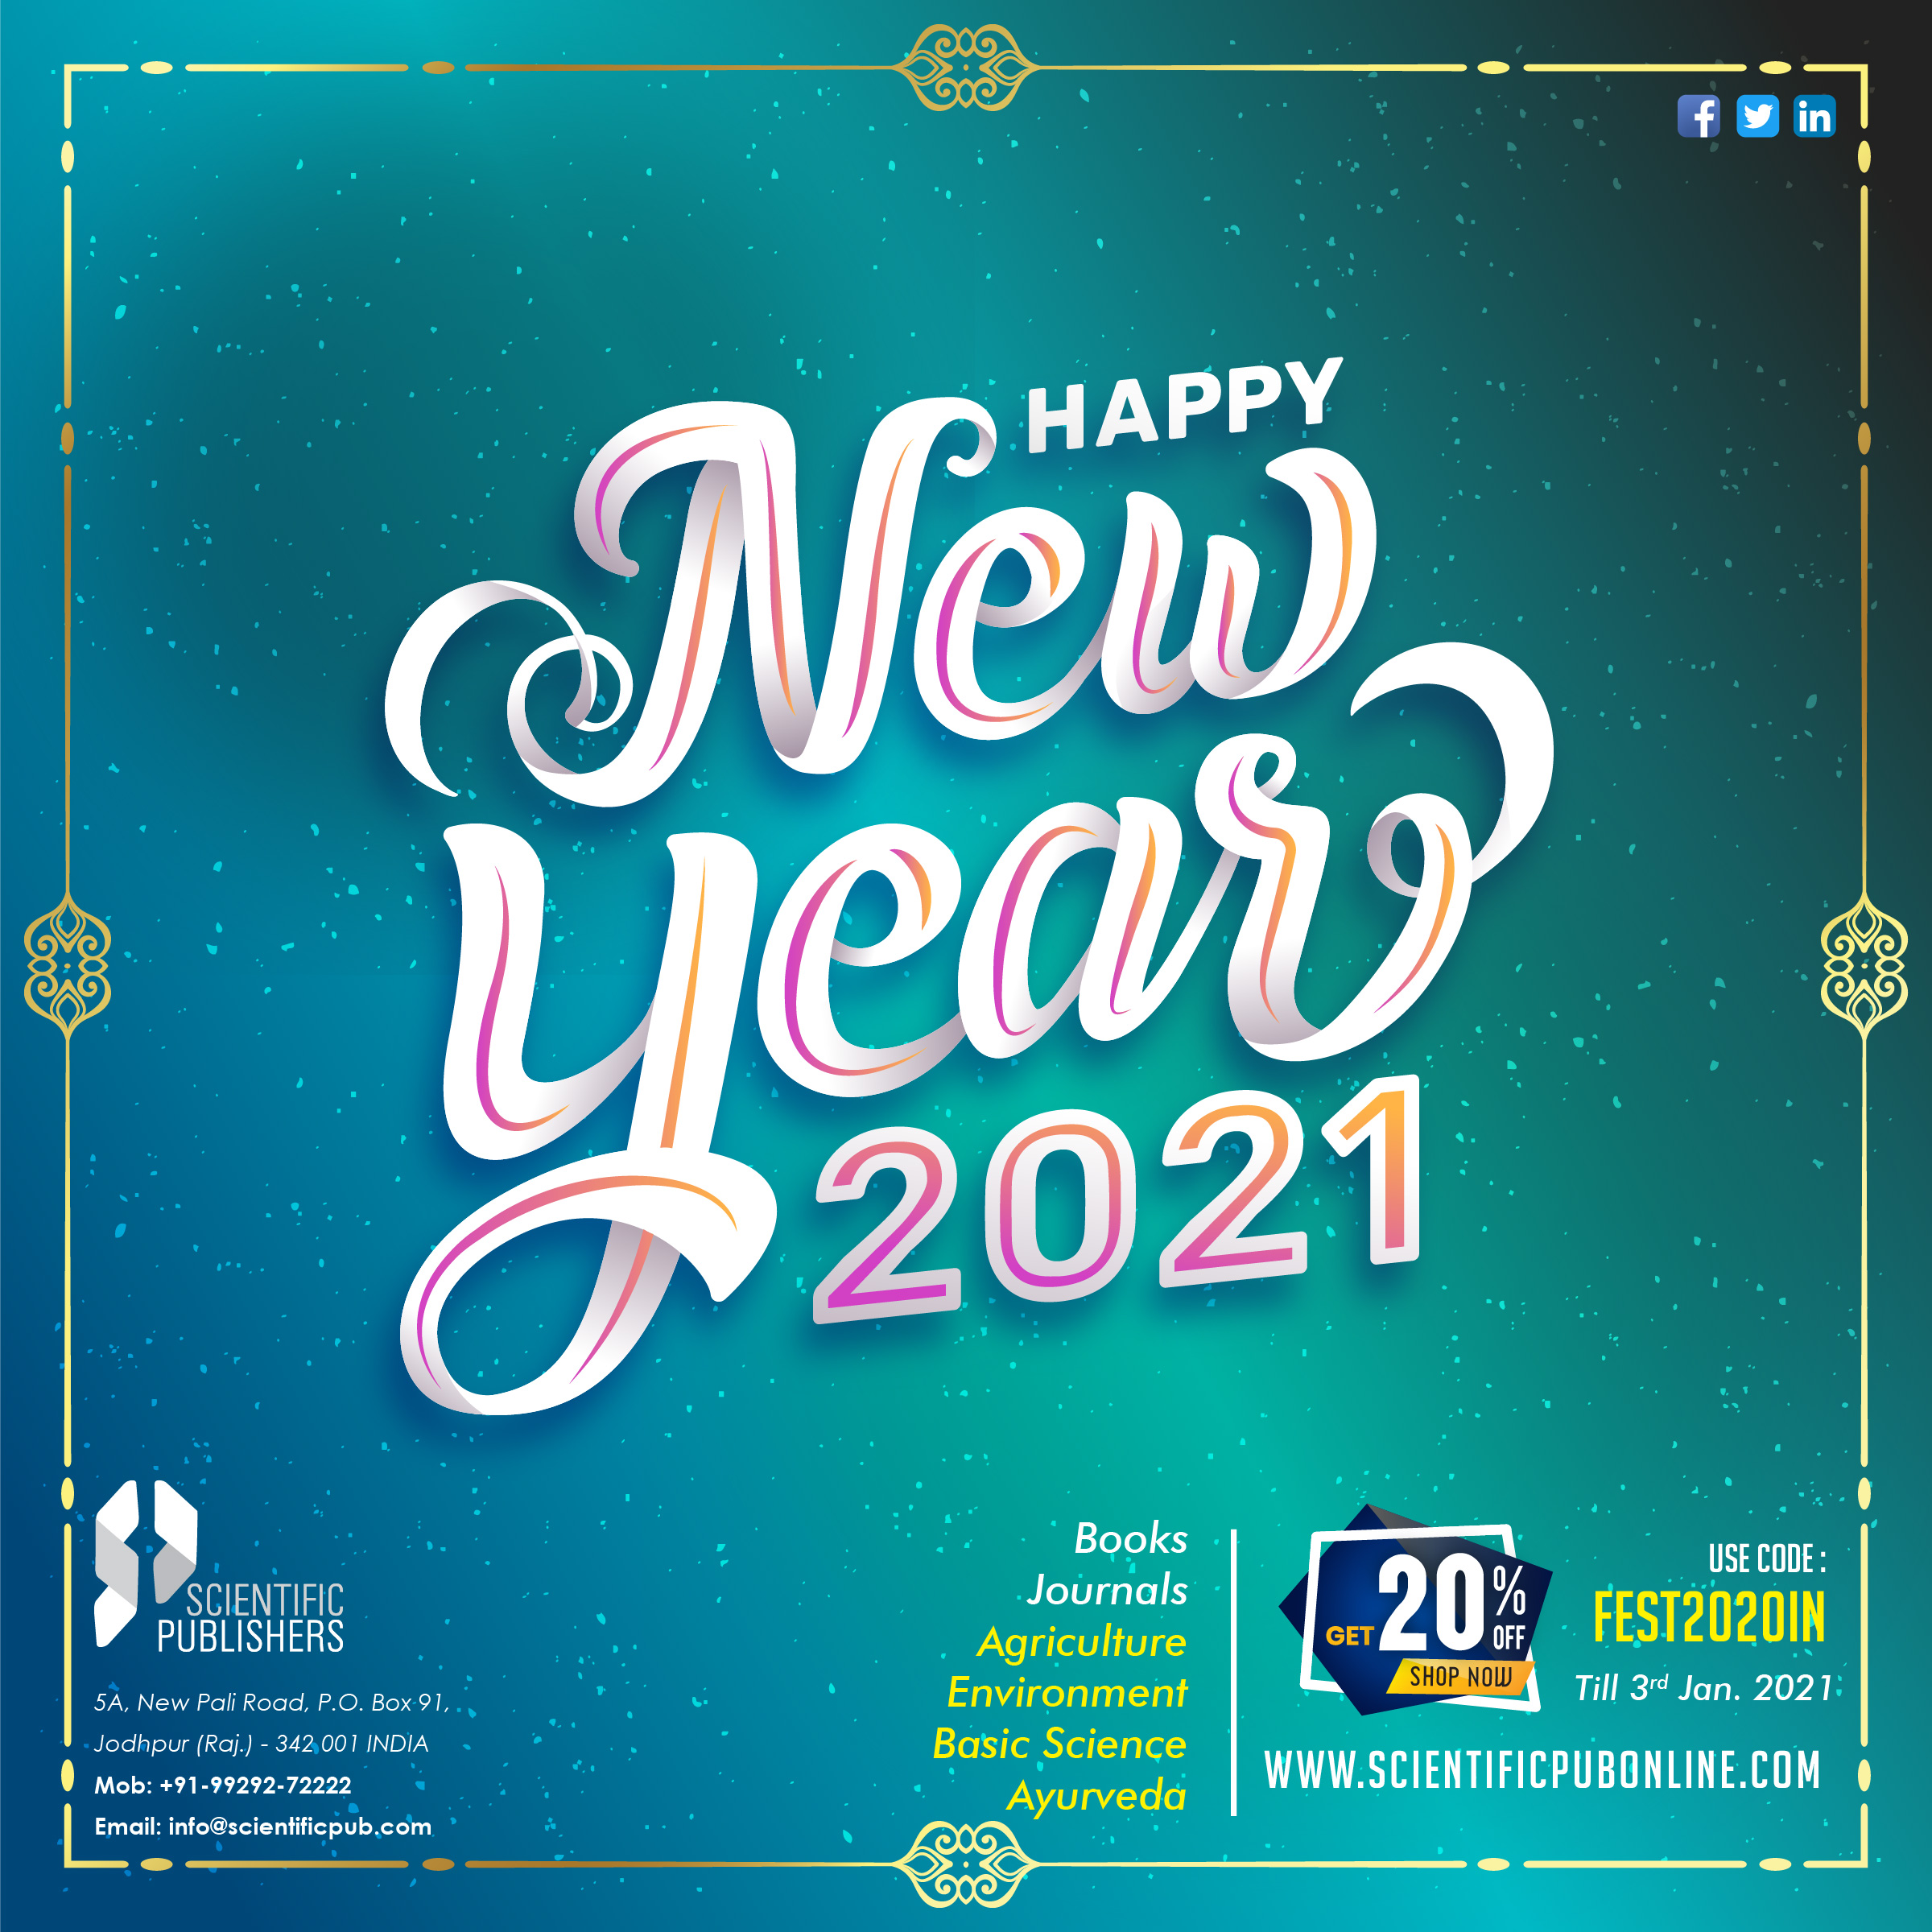 Happy New Year 2021 to all the book lovers from Scientific Publishers!